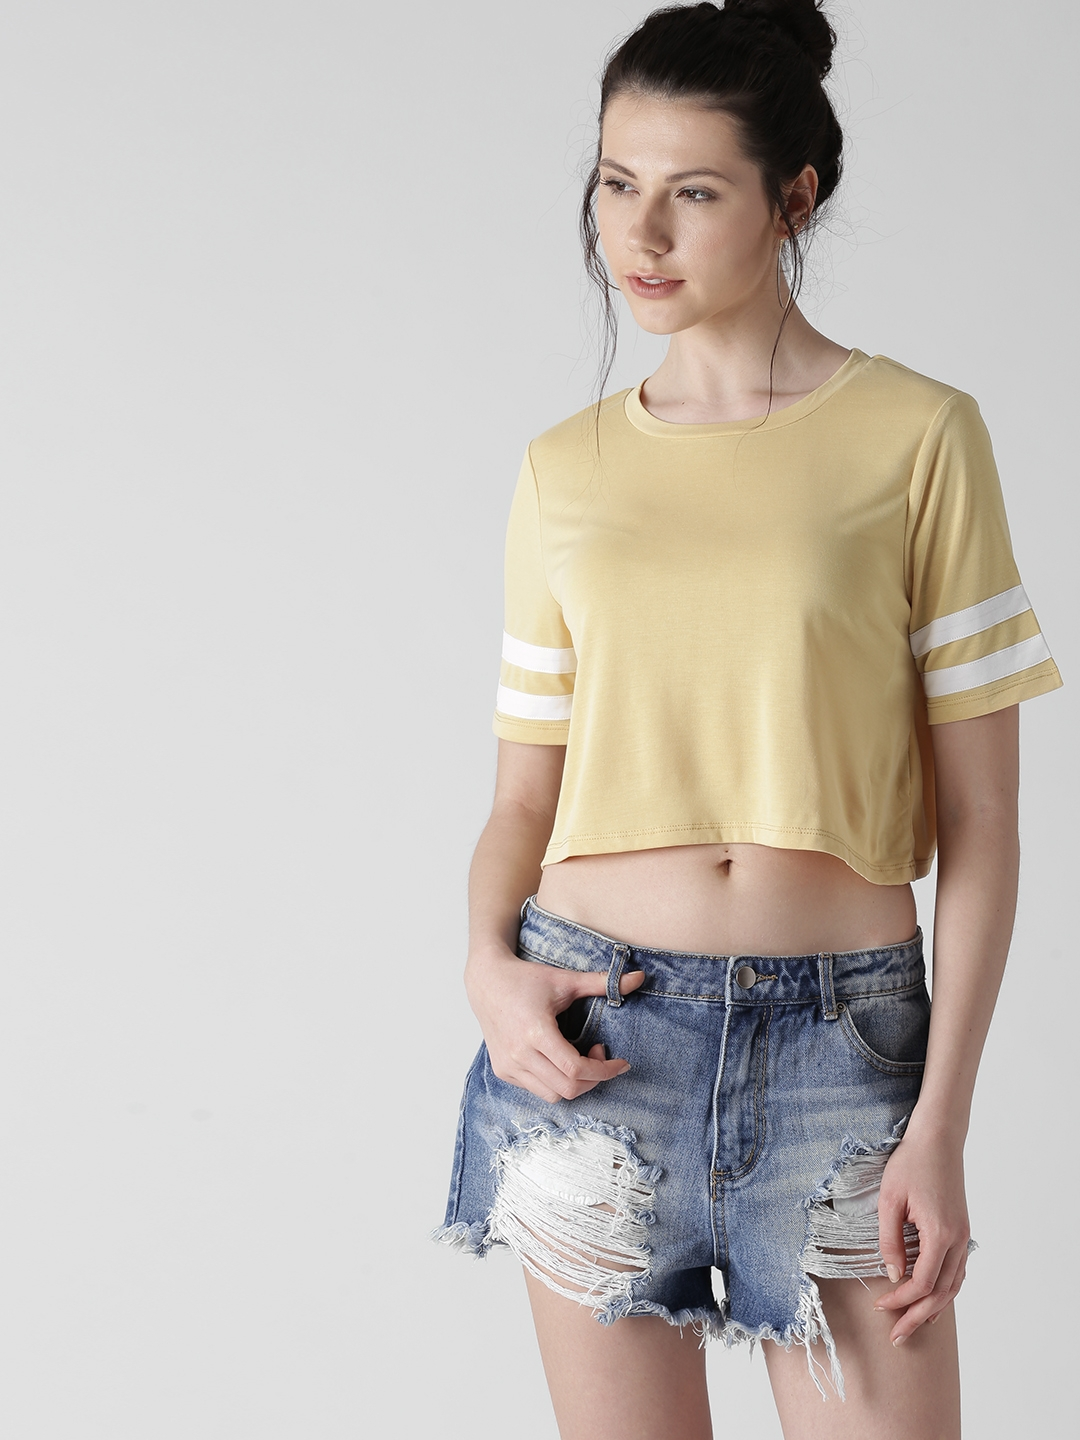 0888c72dab7 Buy FOREVER 21 Women Yellow Solid Round Neck Crop T Shirt - Tshirts ...